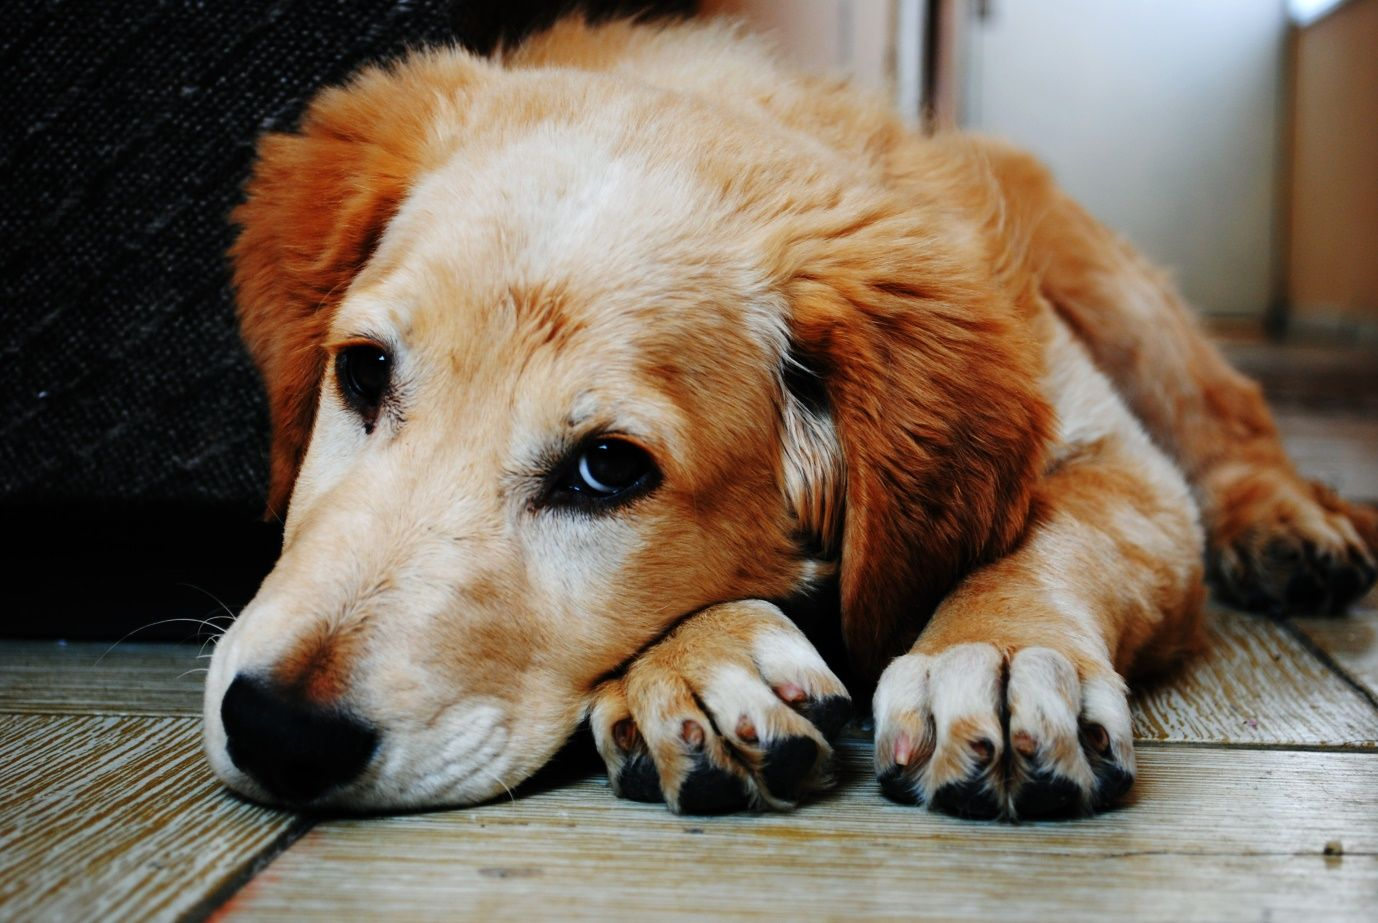 Loss of a Pet, Mourning the death of your furry best friend, loosing a dog, deal with a dog's death, how to deal with a dog dying, death of dog